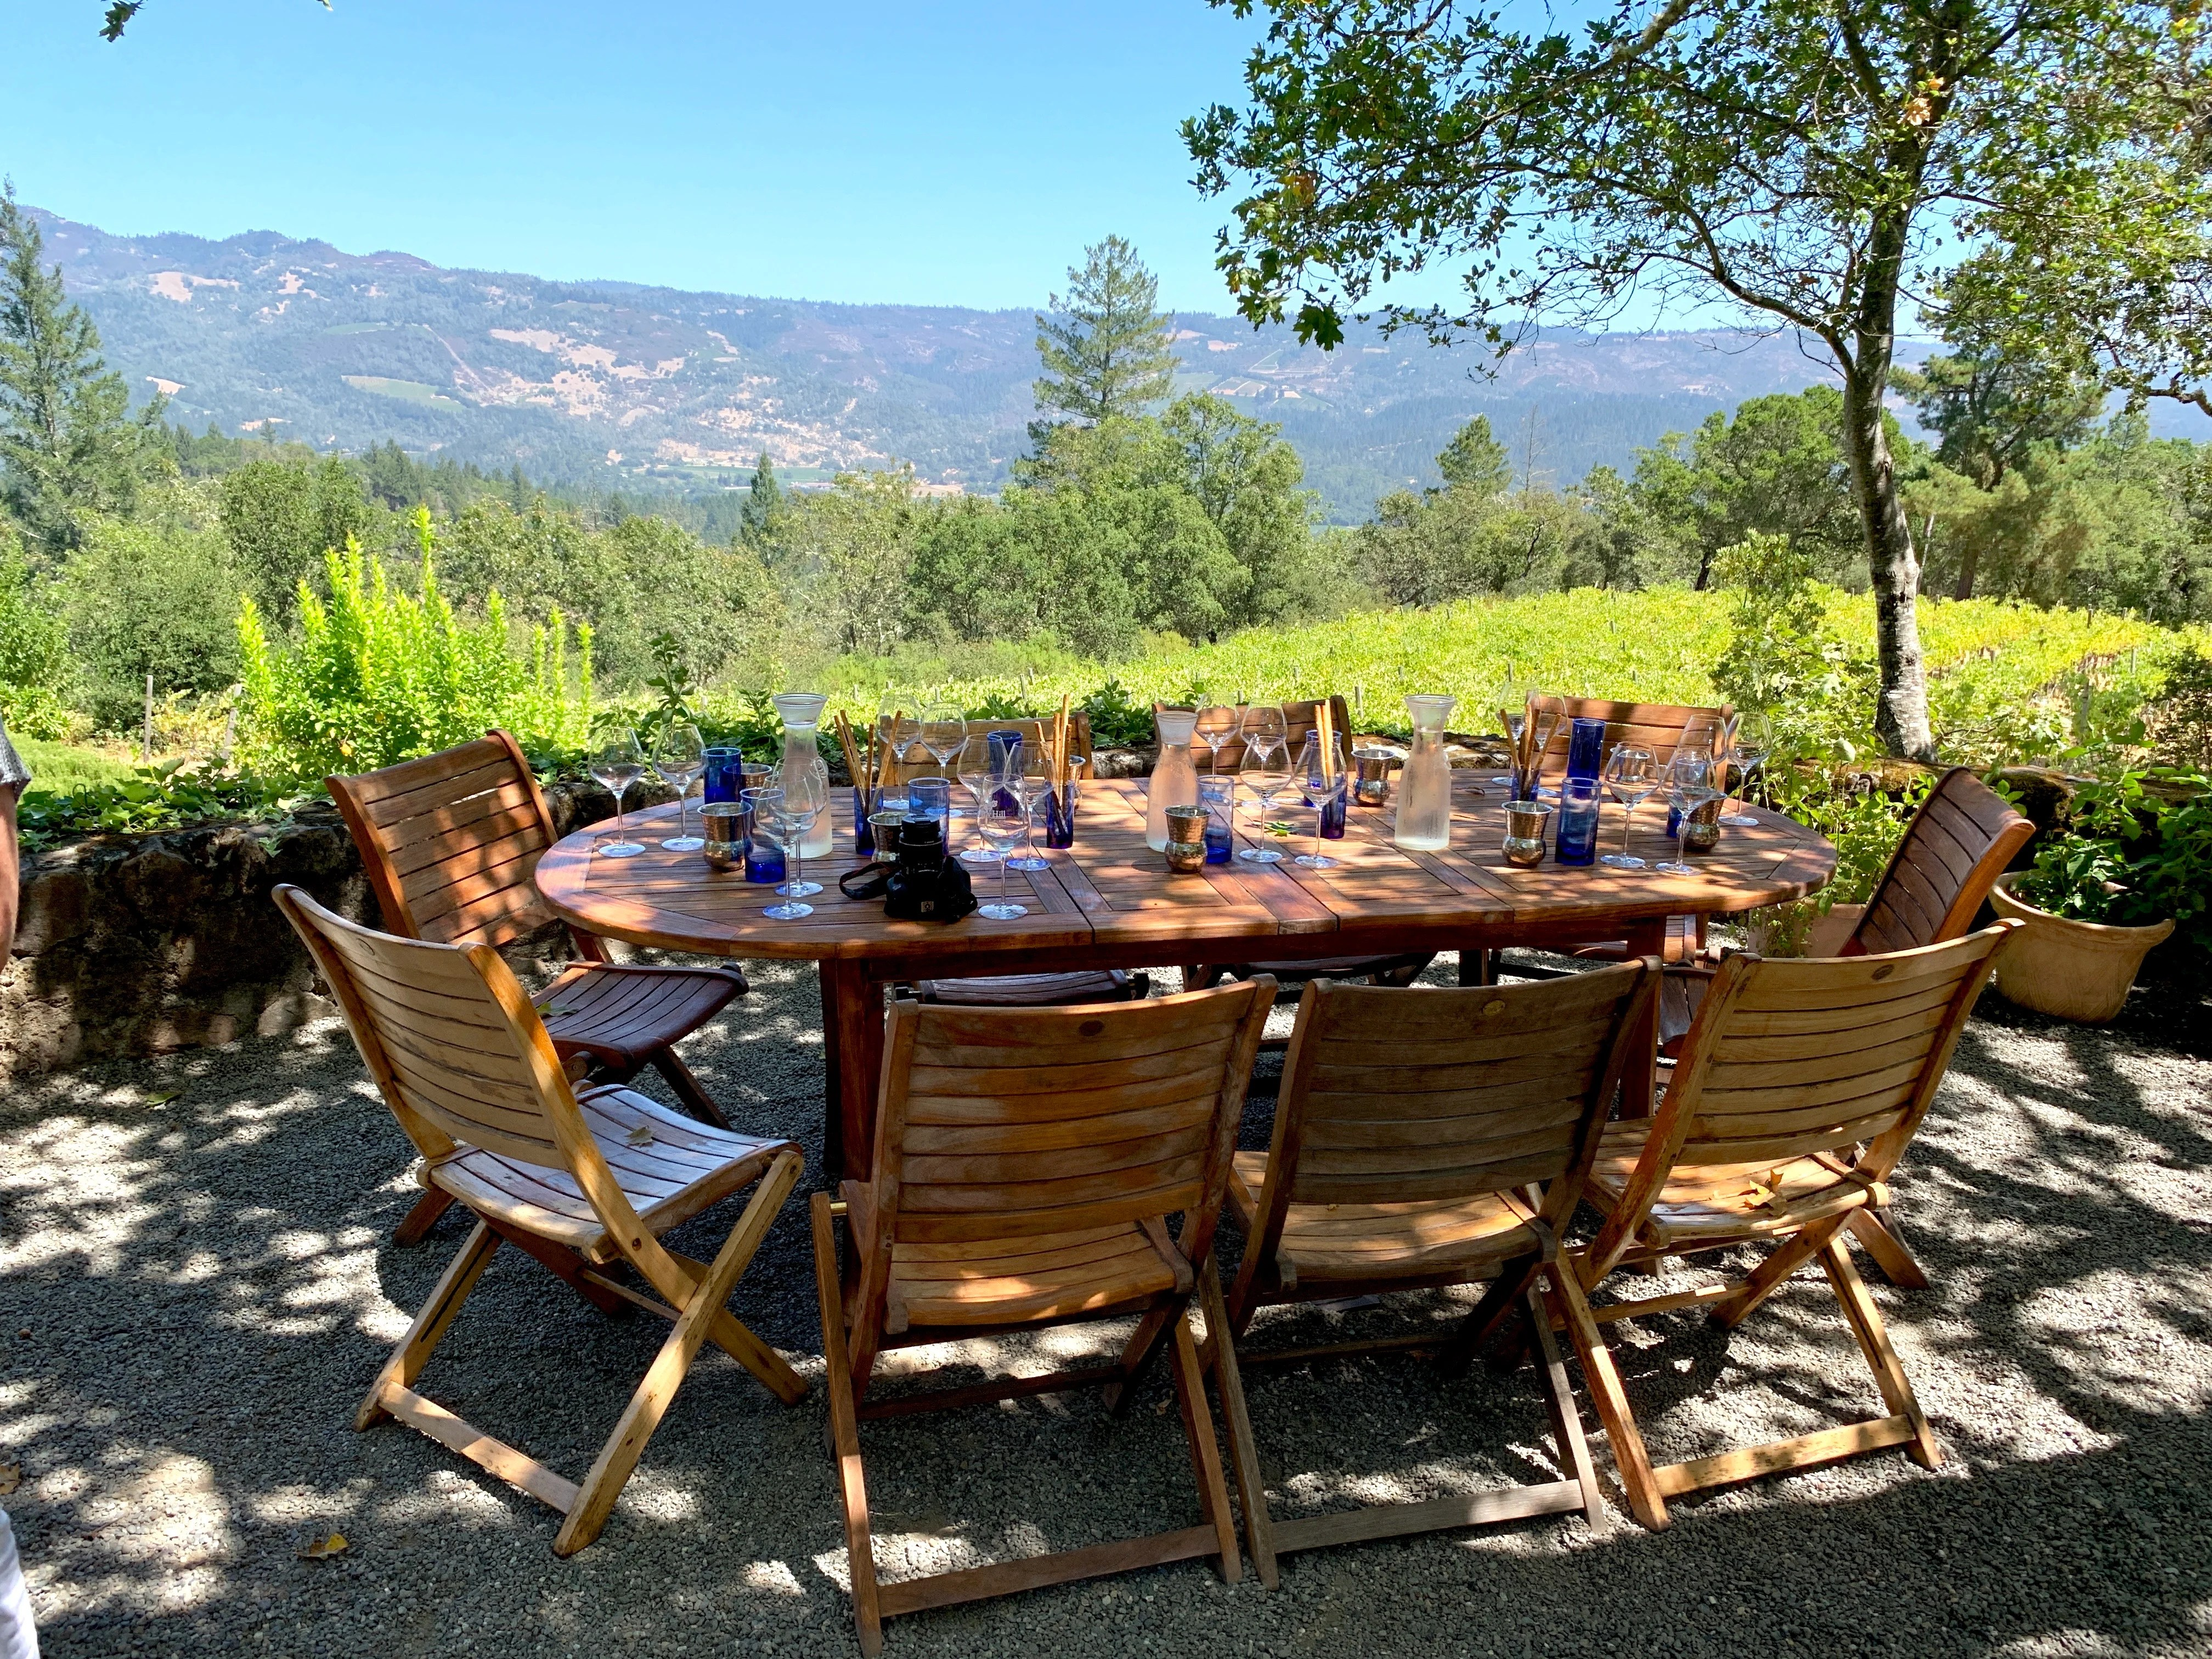 8 mistakes to avoid when visiting Napa Valley